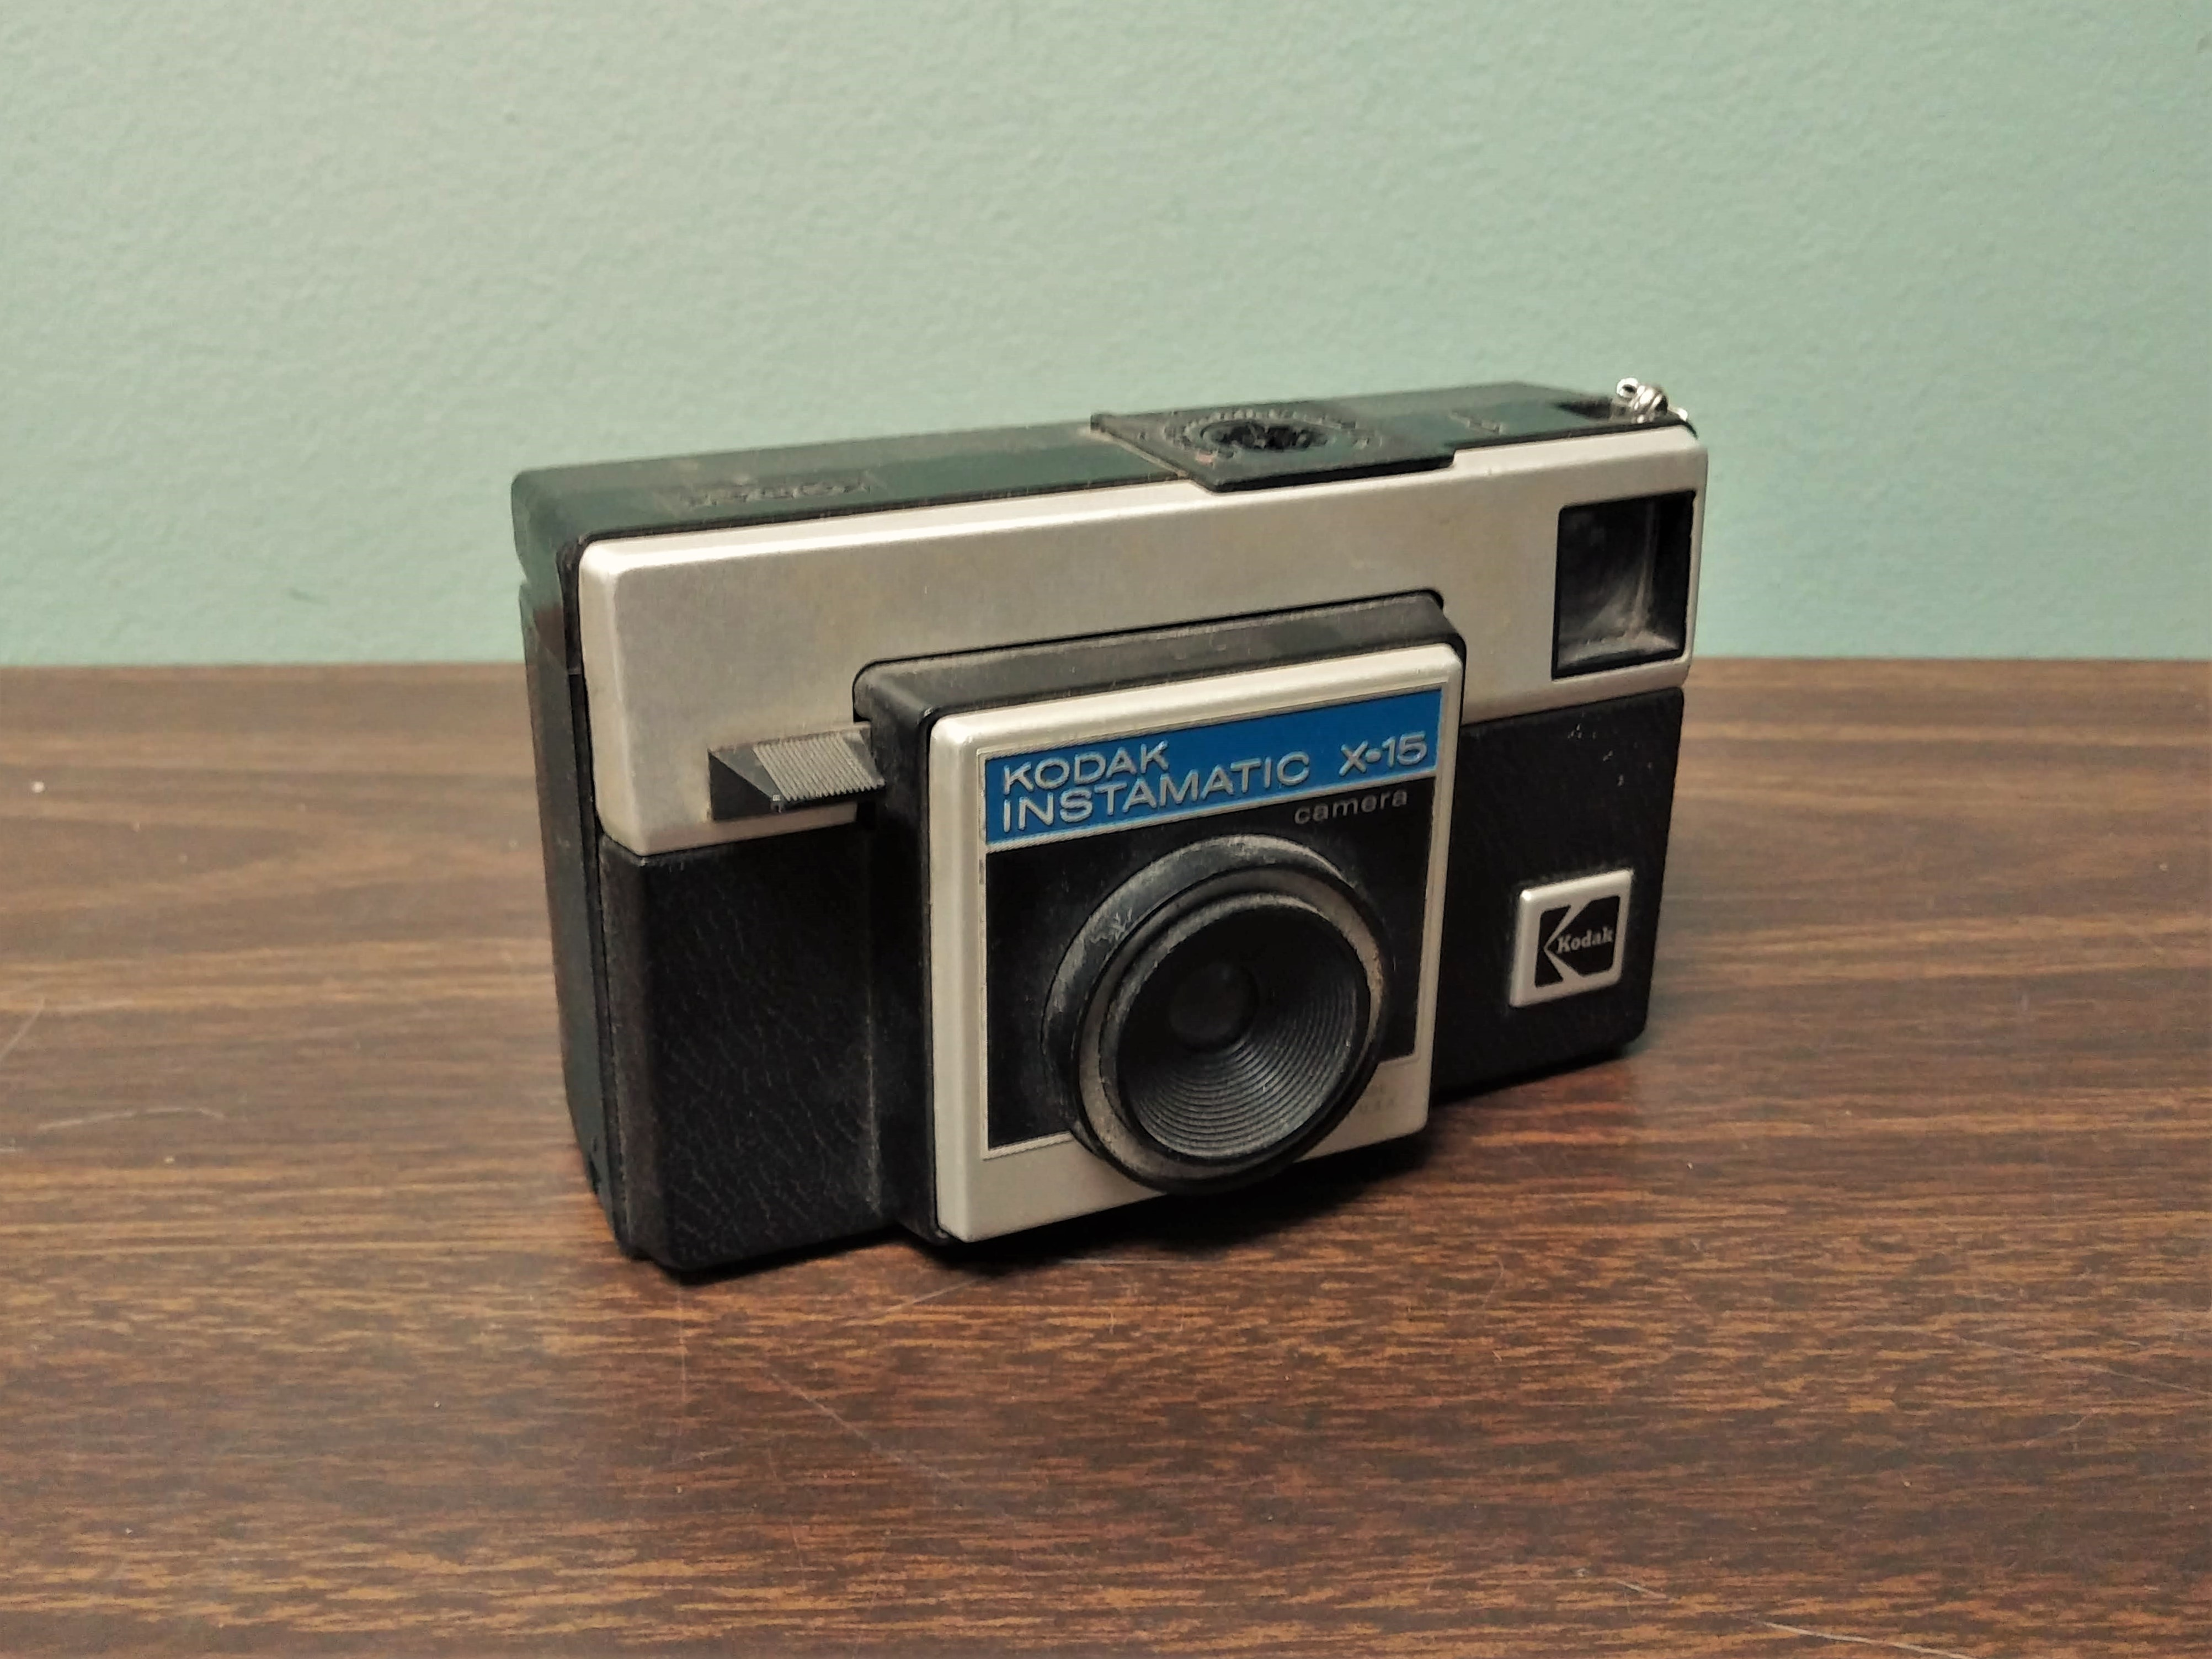 Kodak Film Camera